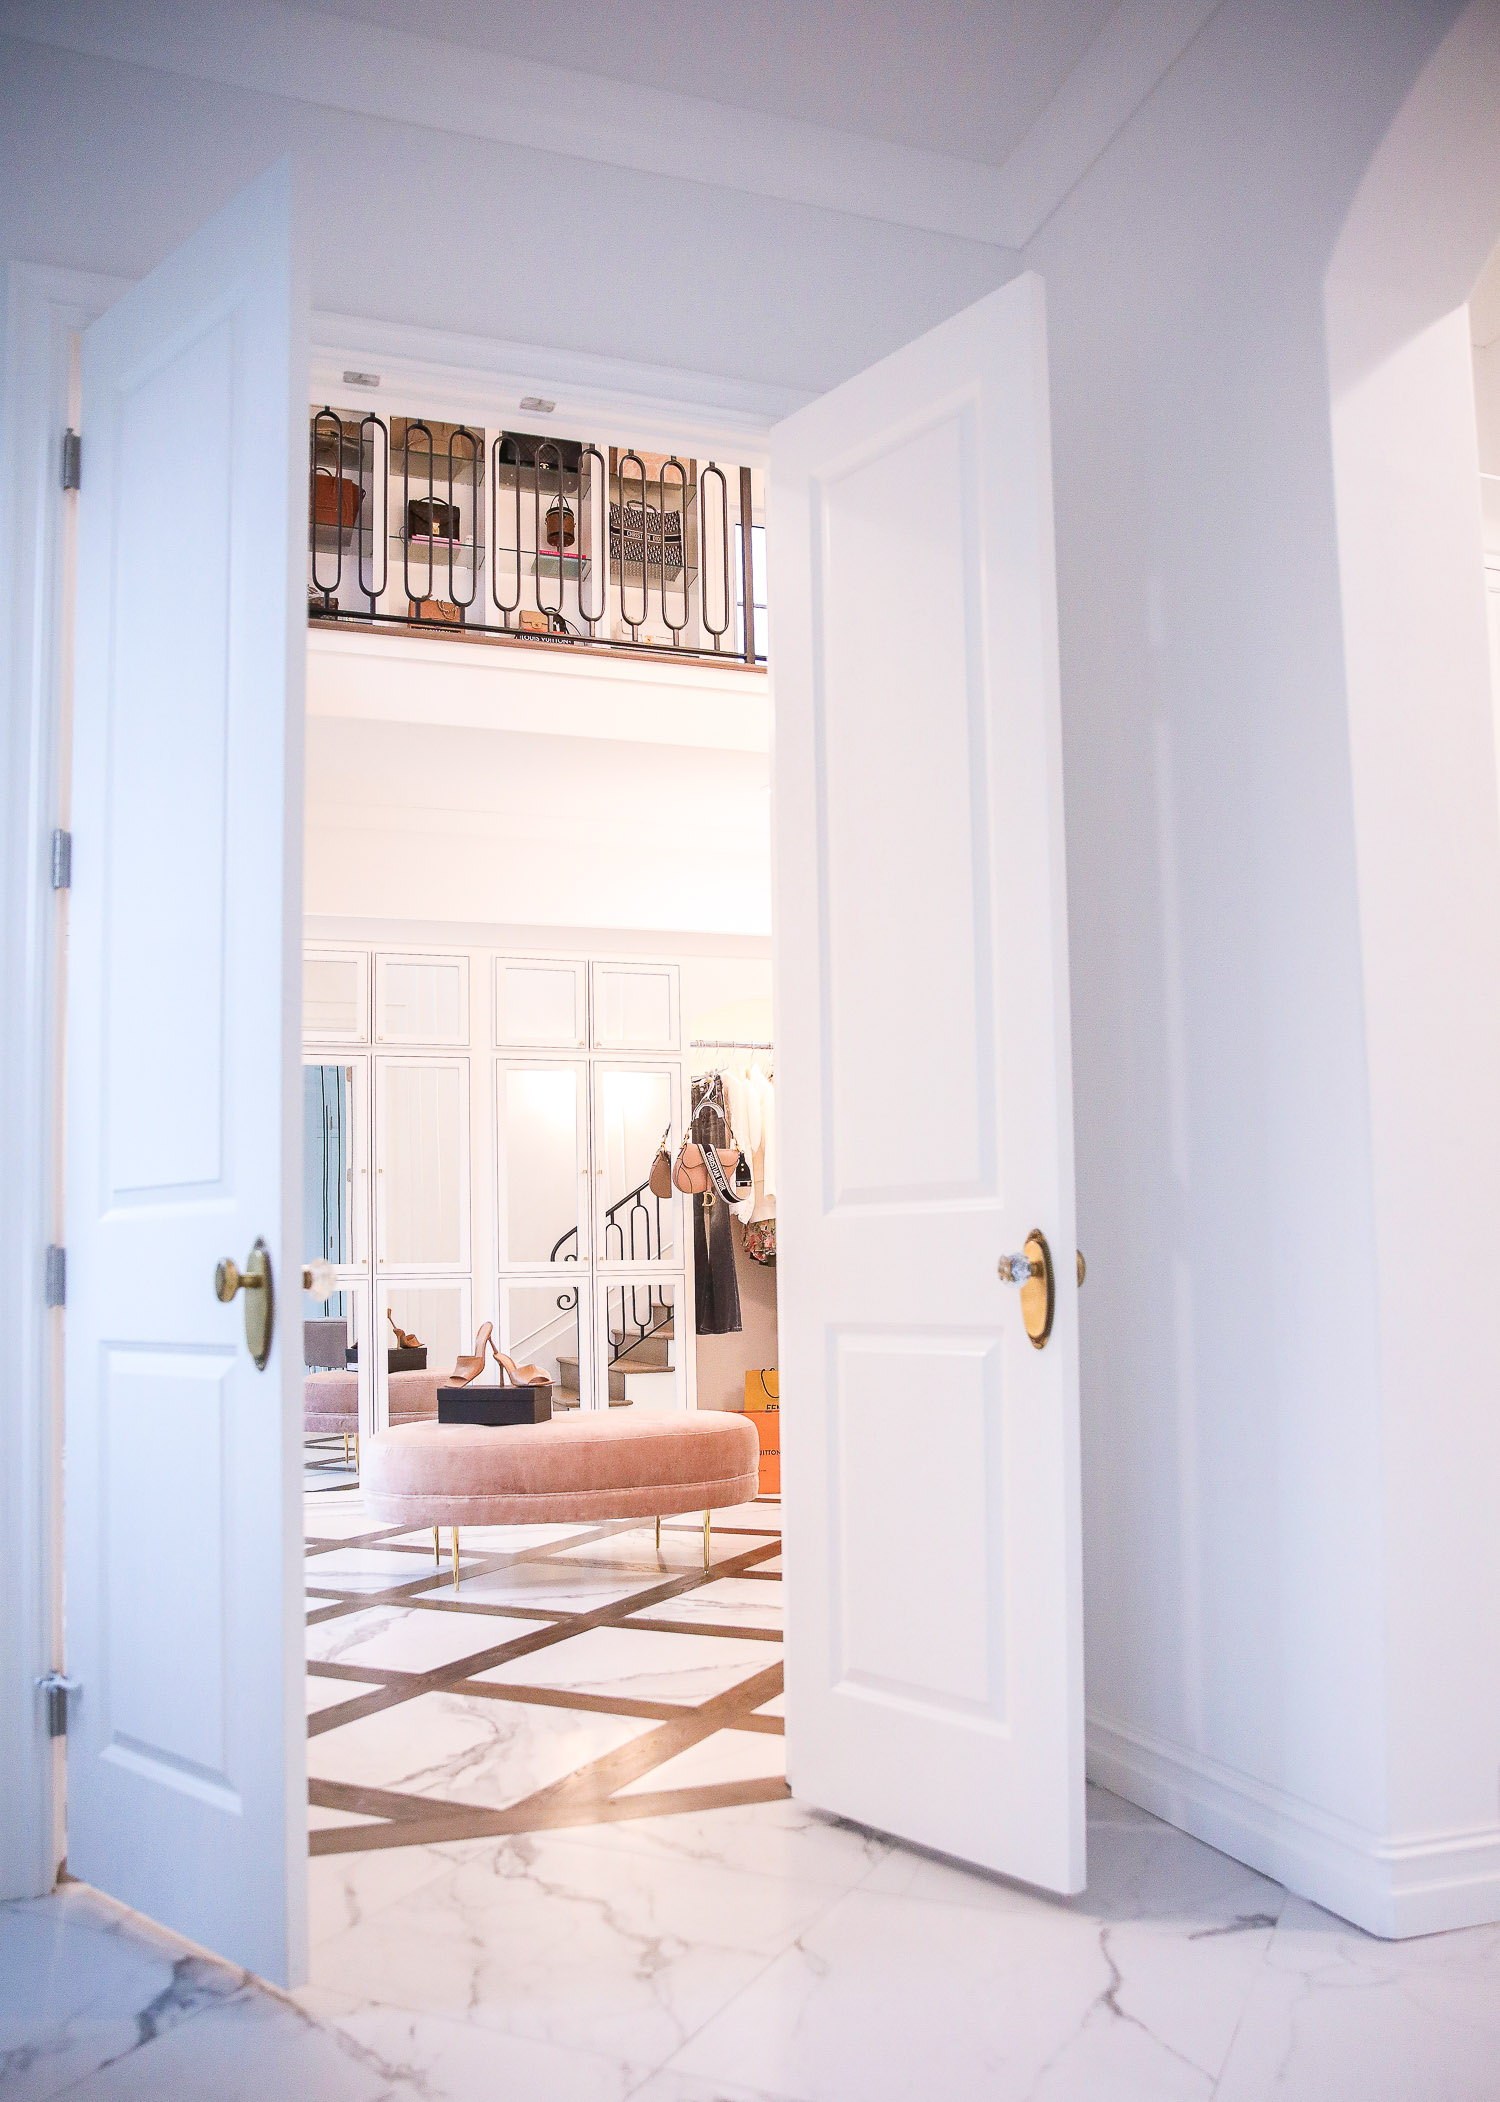 Top Picks by popular US life and style blog, The Sweetest Thing: image of a two story closet with white double doors, gold and crystal door knobs, marble and wood flooring, black metal stair railing, full length mirrors, and a pink velvet ottoman.